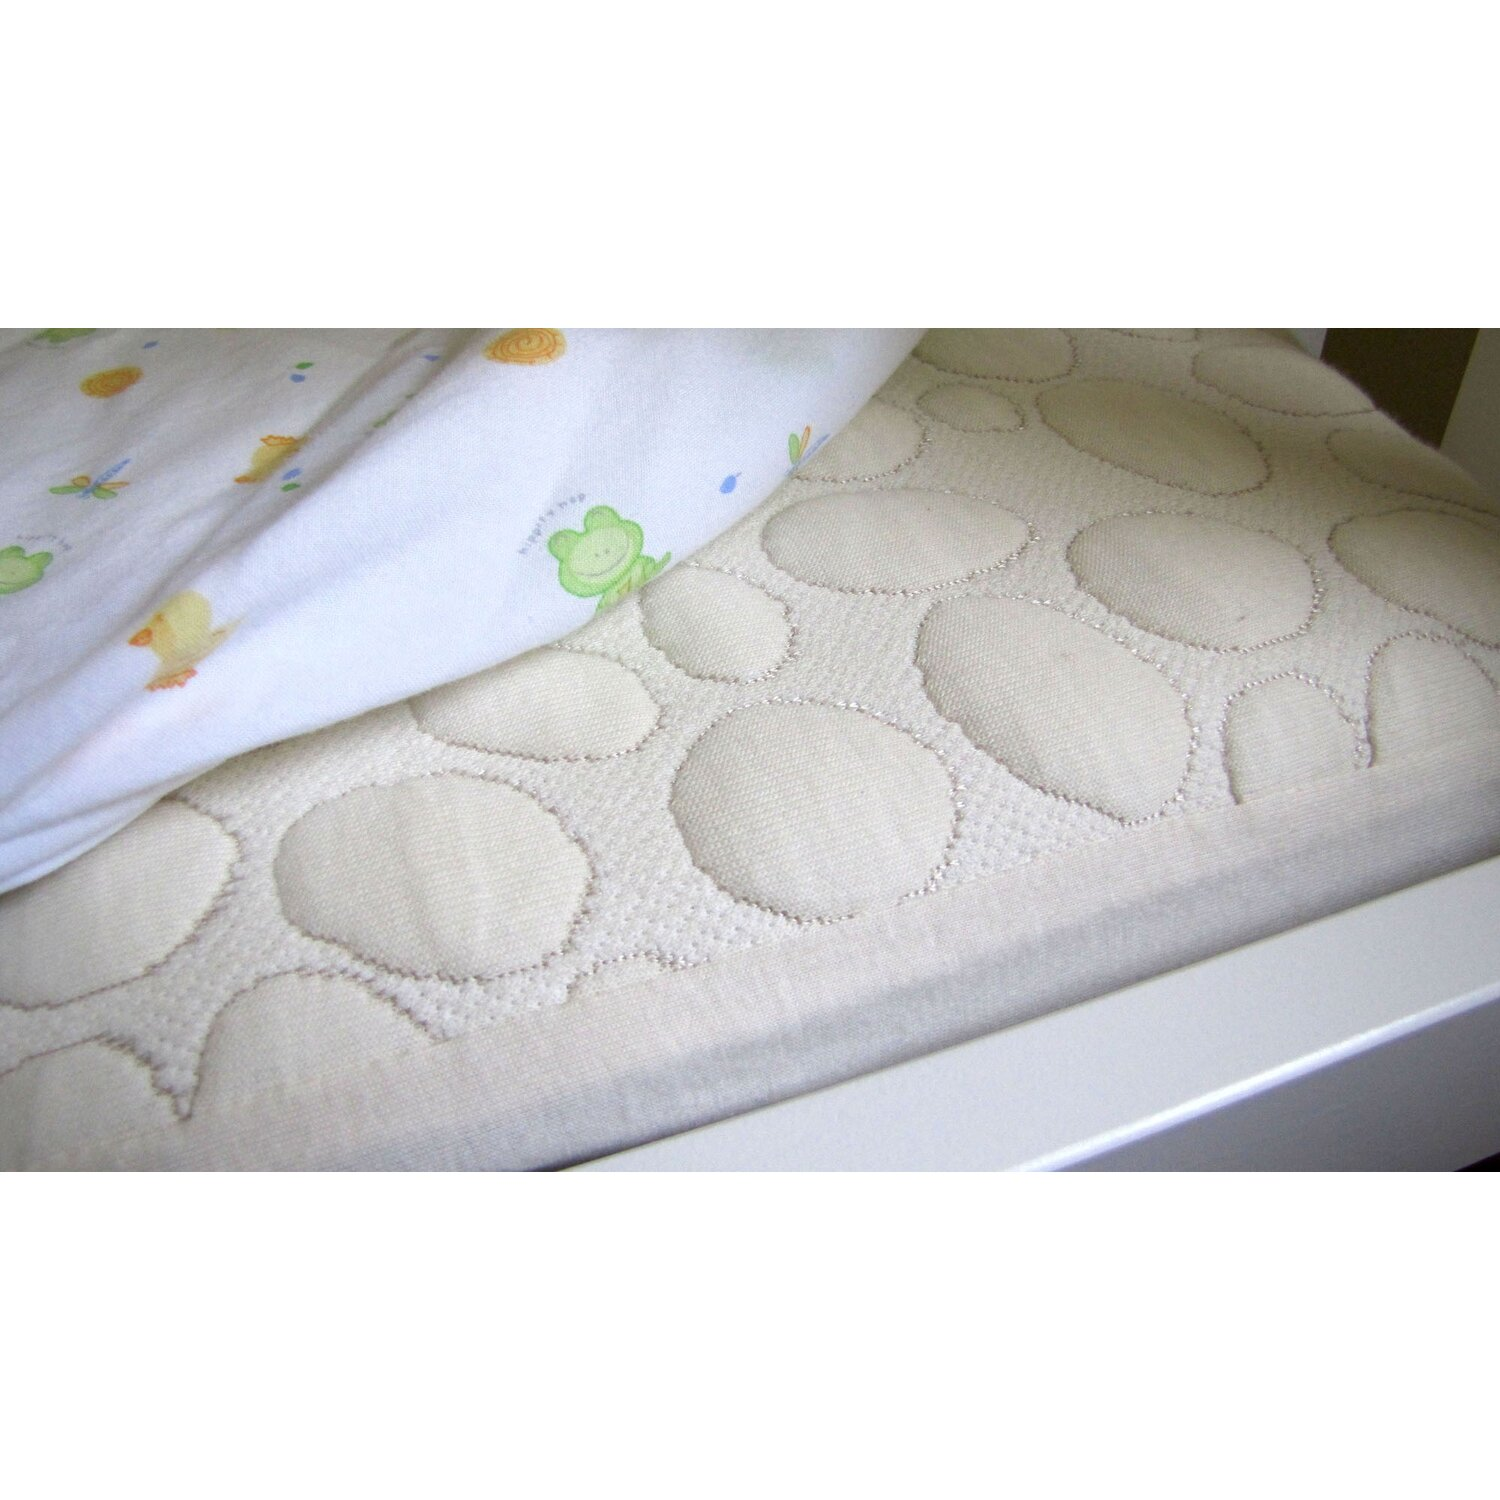 Where Can I Buy G.S. STEARNS LUXURY FIRM QUEEN  Where Can I Buy G.S. STEARNS LUXURY FIRM QUEEN MATTRESS   MATTRESS